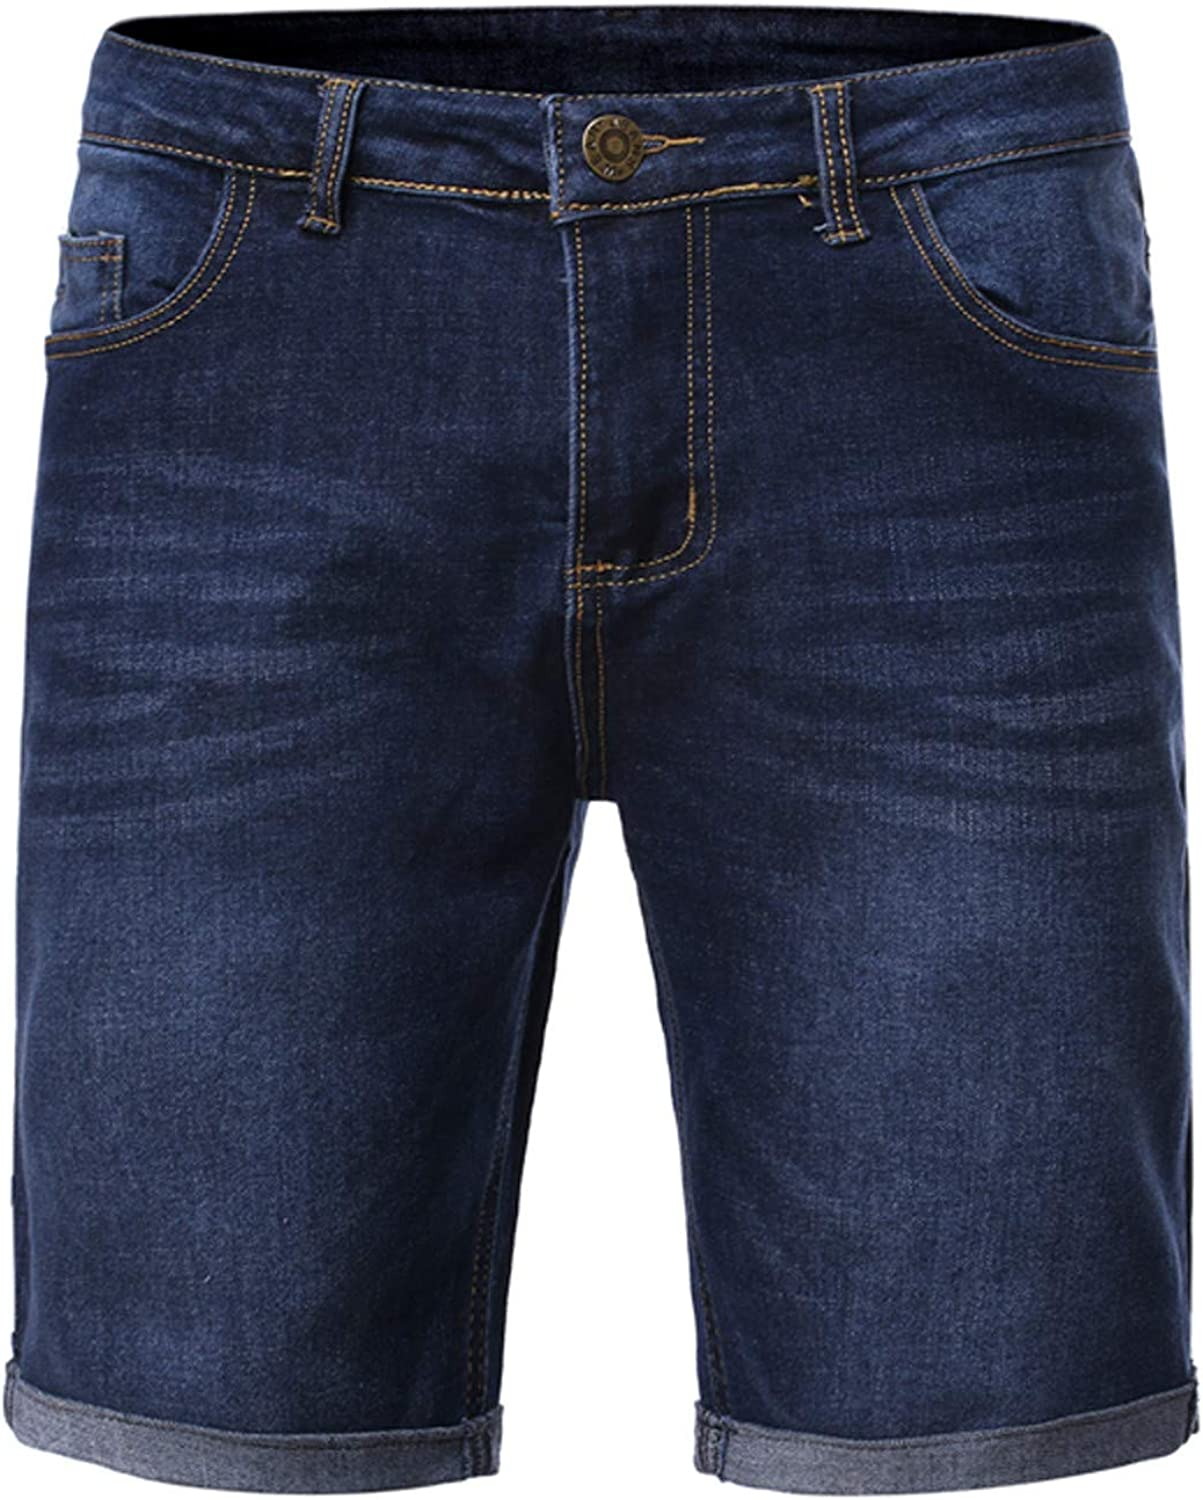 Mens Casual Denim Shorts Classic Relaxed Cargo Short Loose Straight Denim Washed Blue Denim Shorts Five Part Trousers